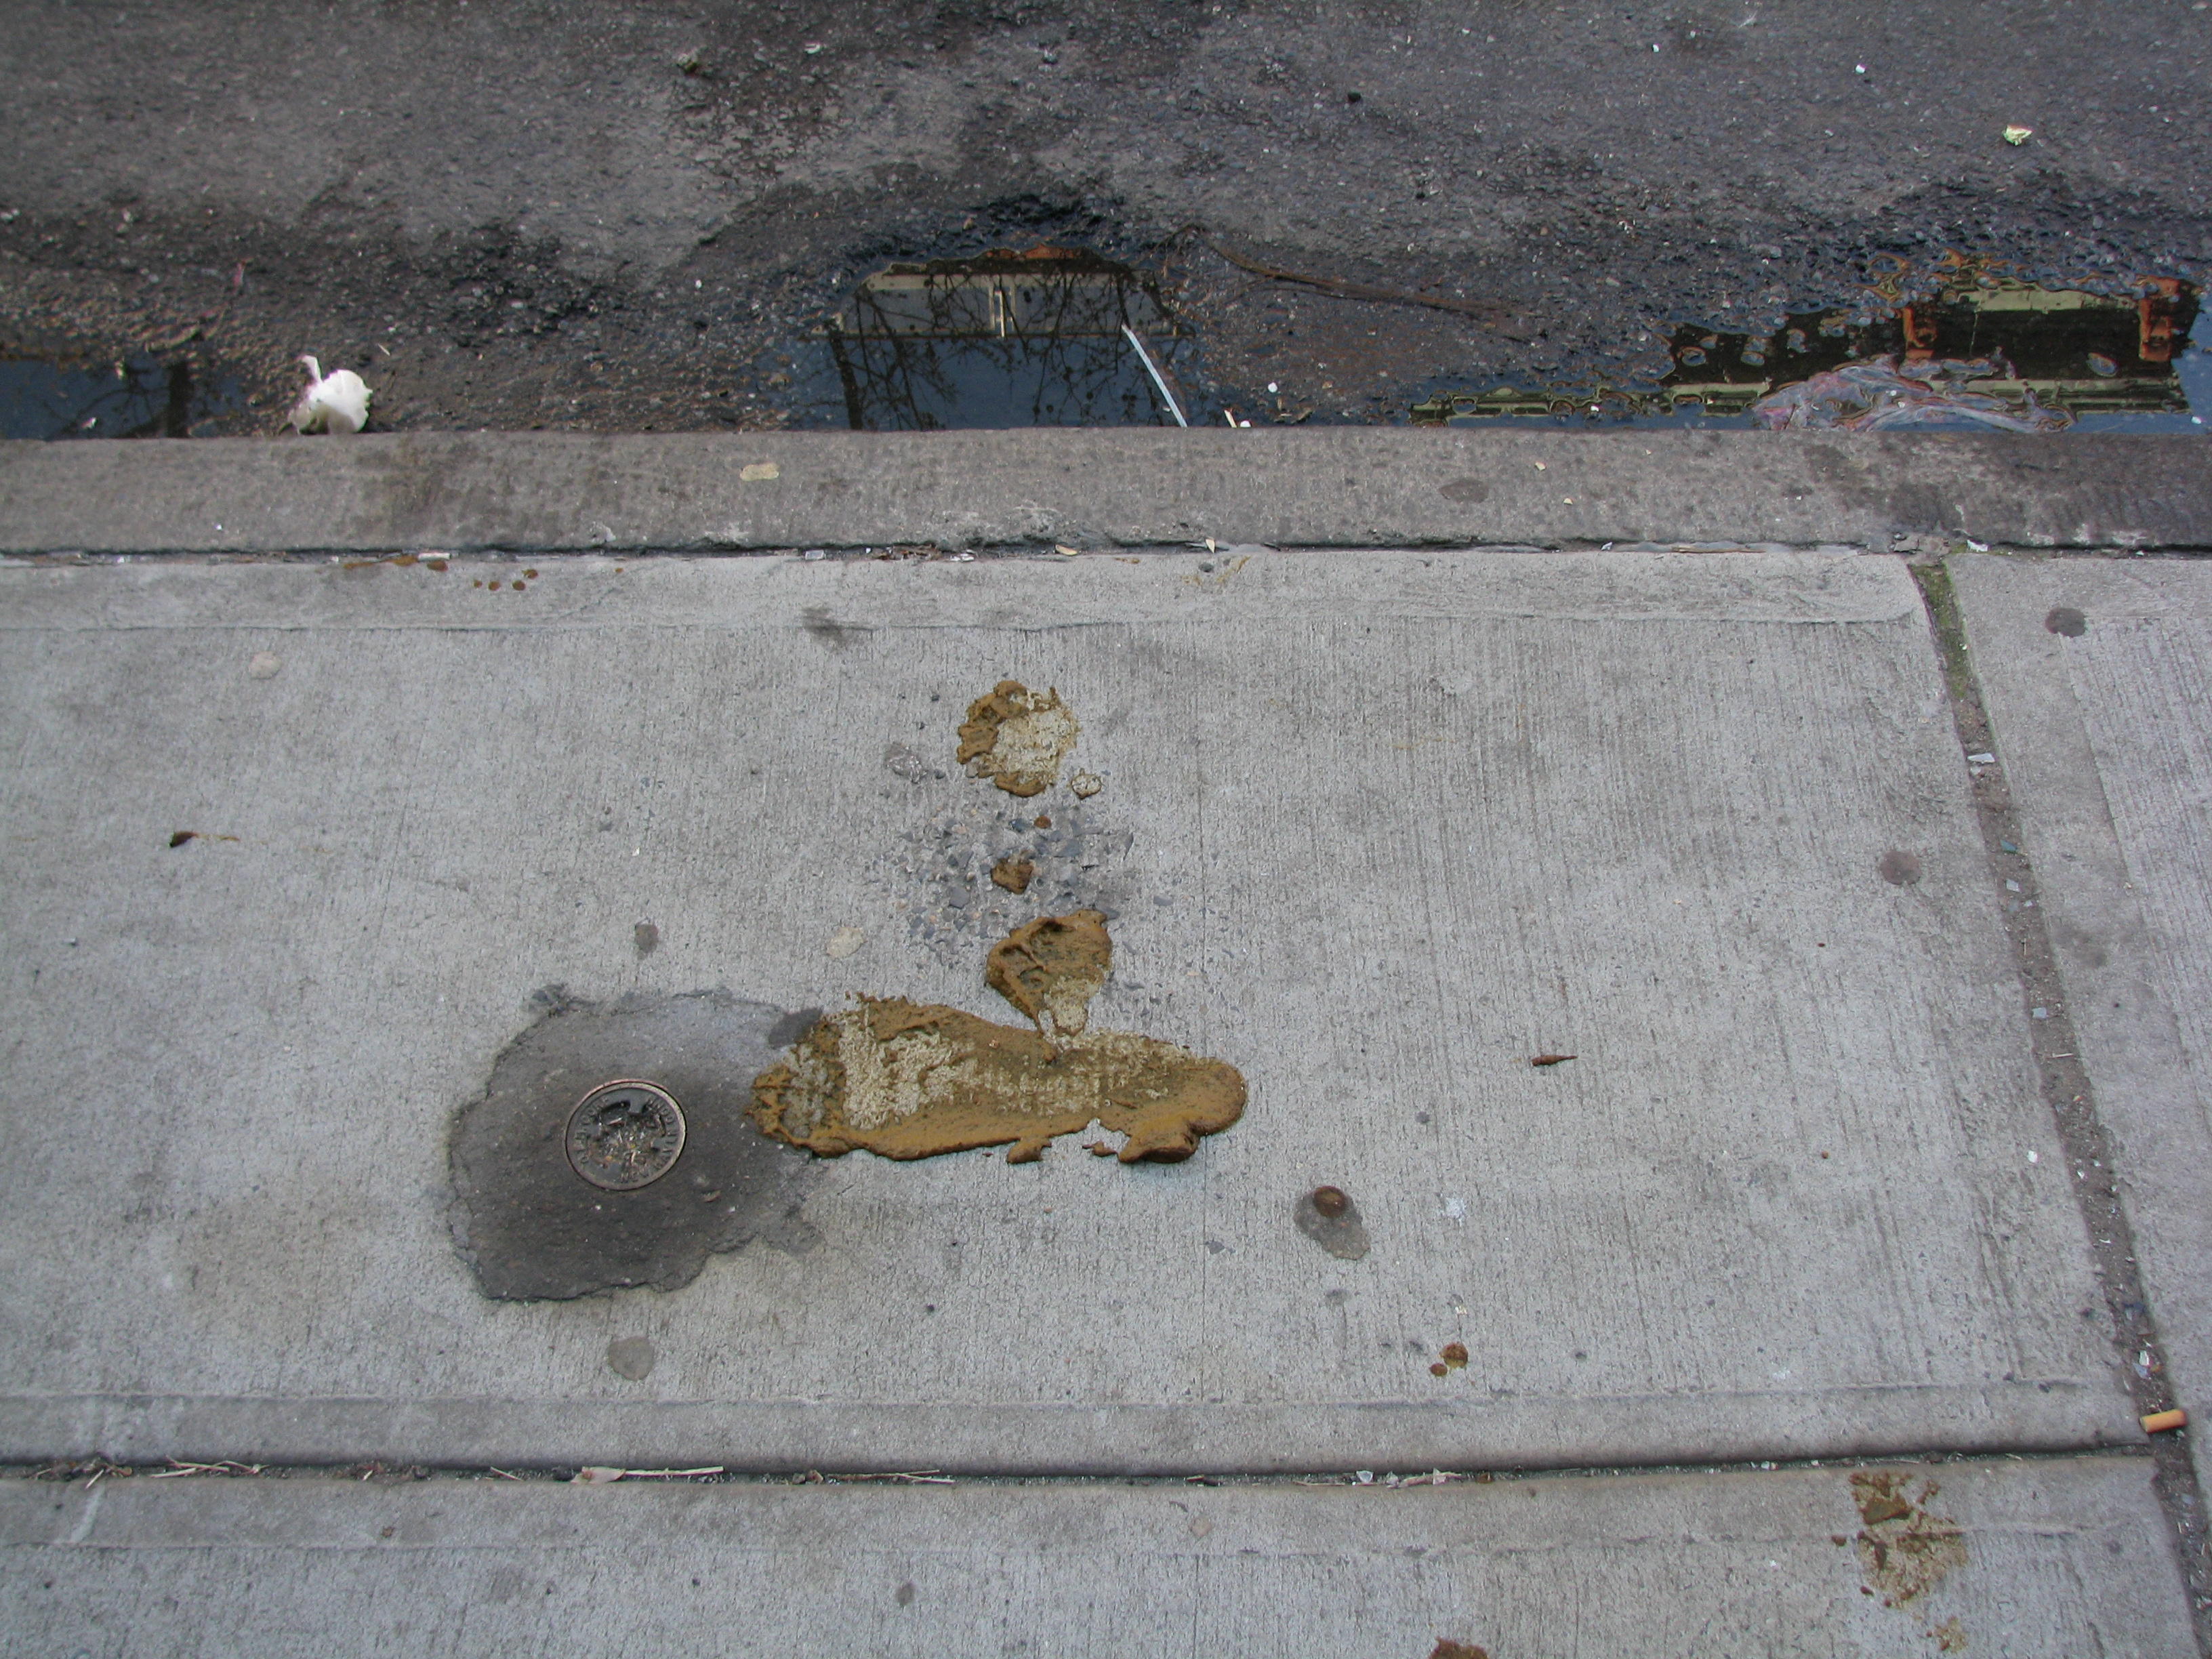 Barefoot footprint in dog shit